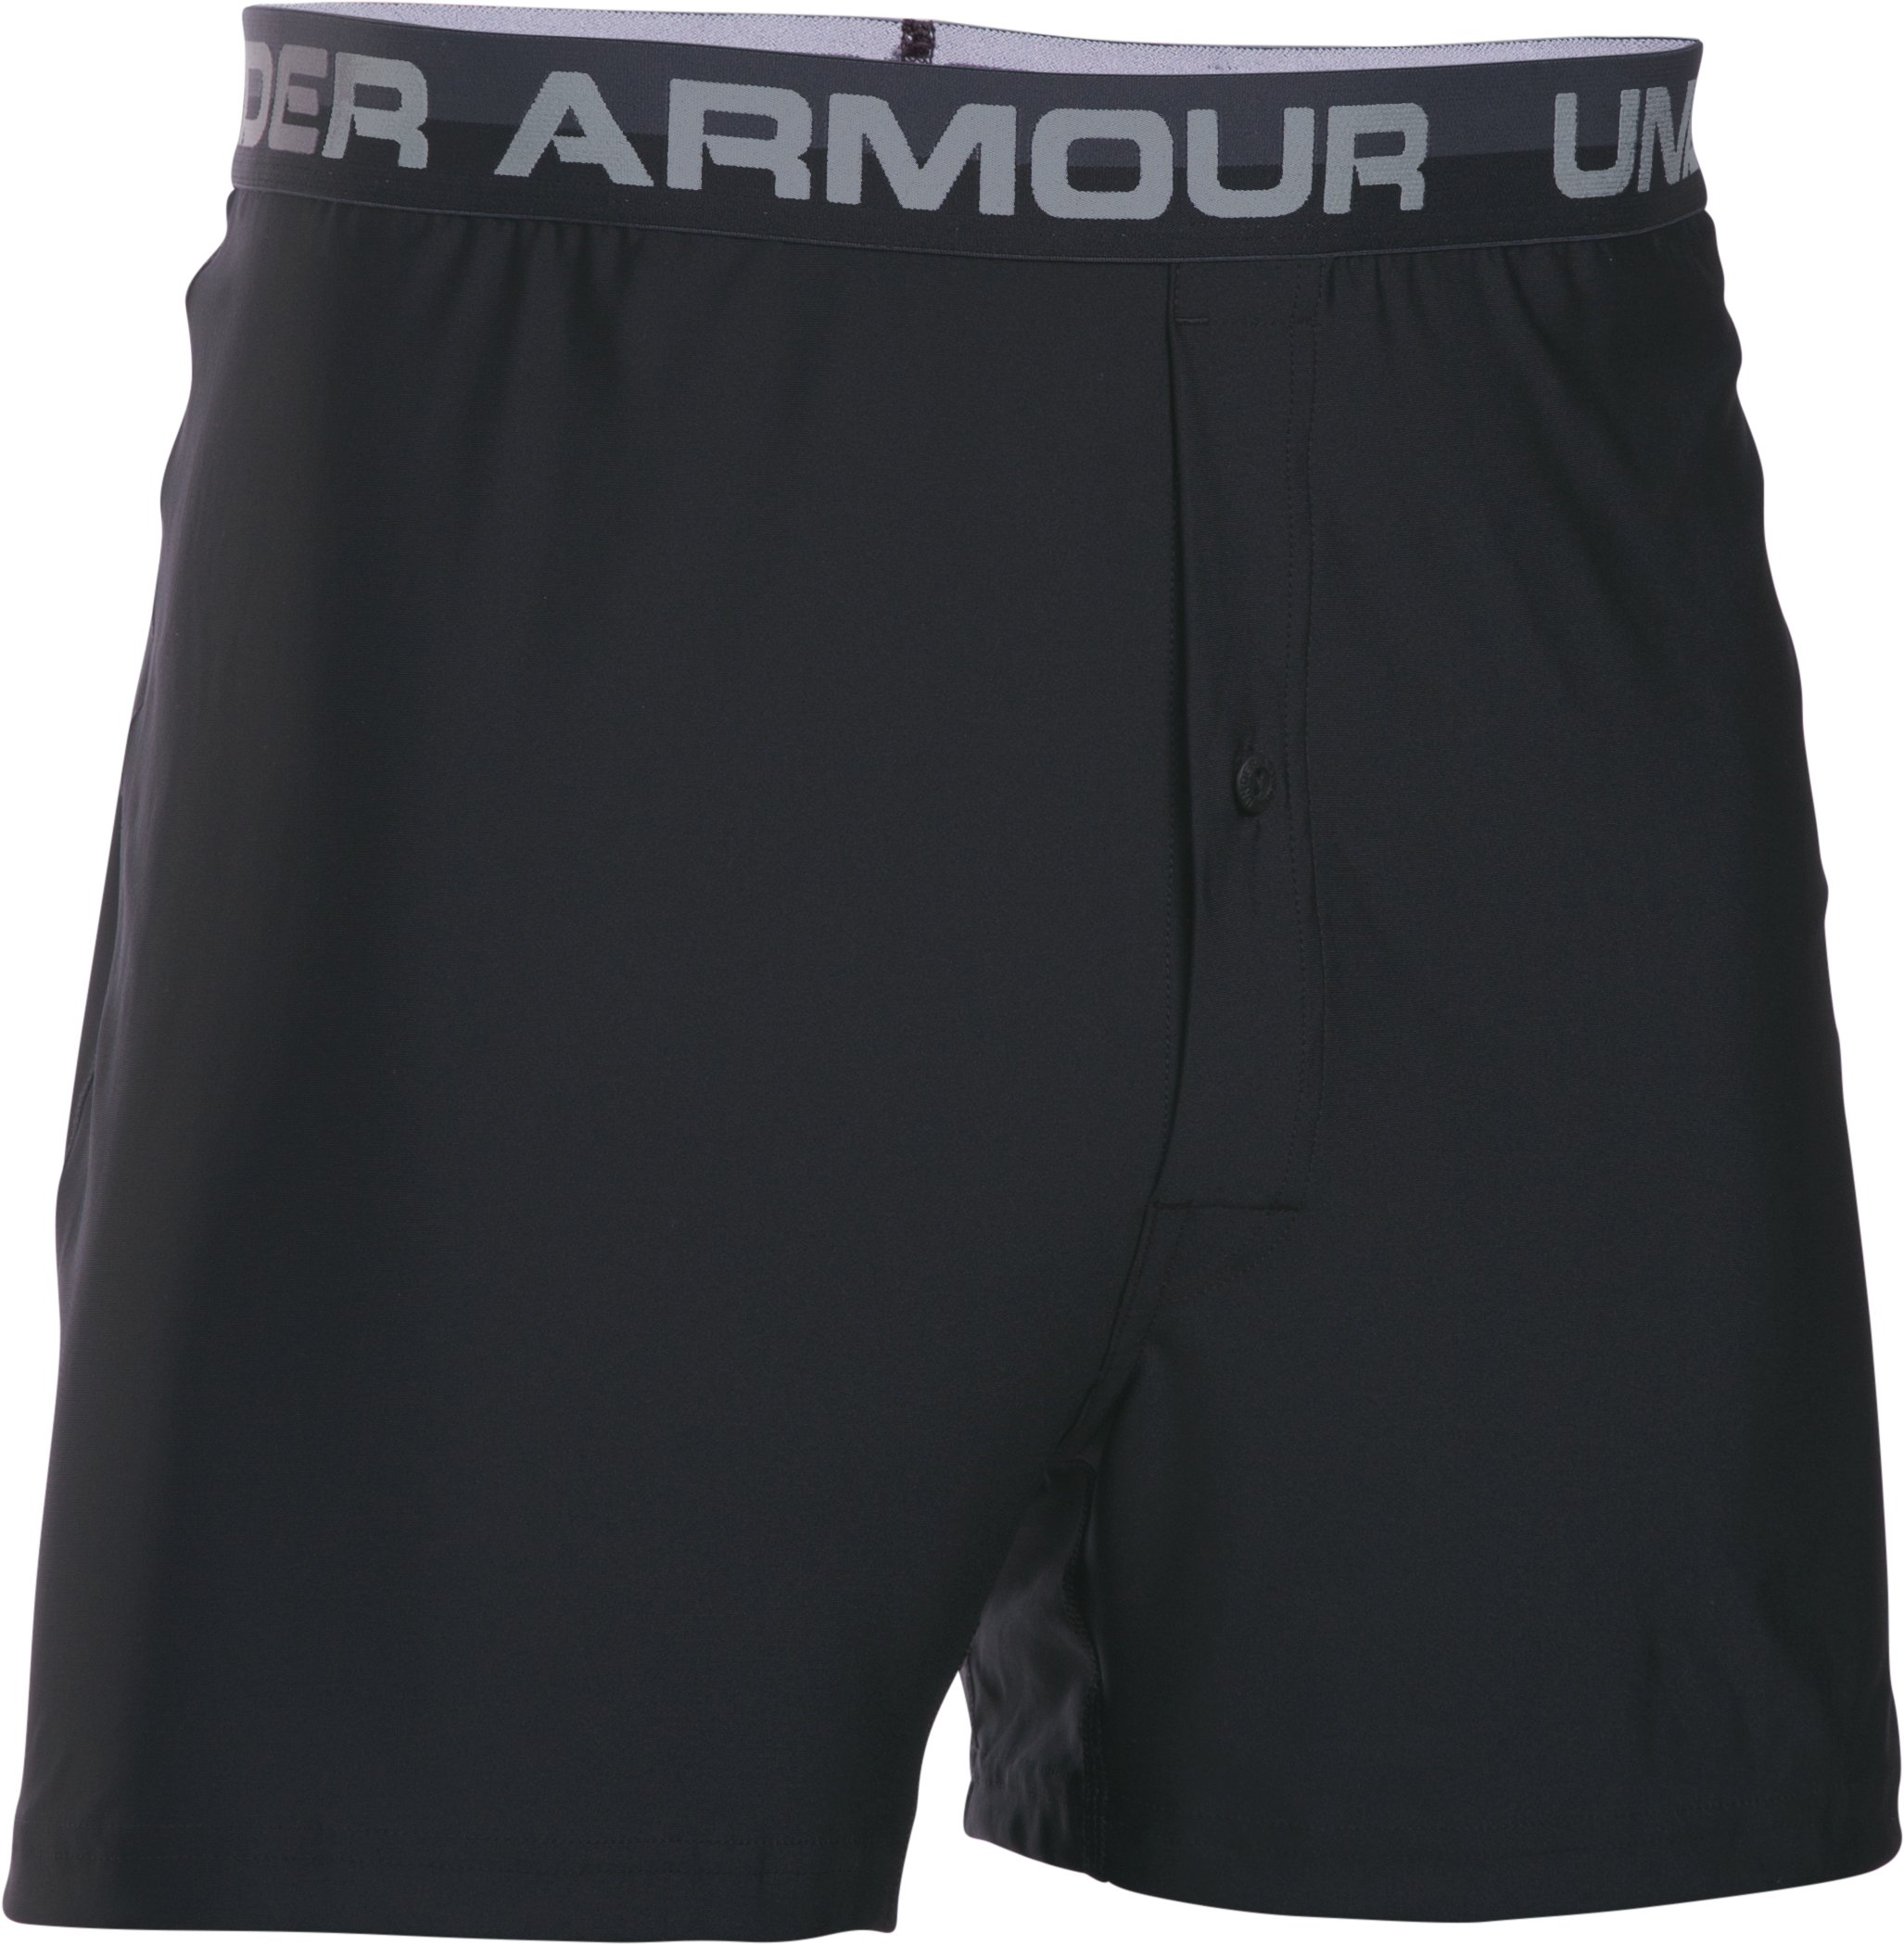 Men's UA Original Series Boxer Shorts, Black